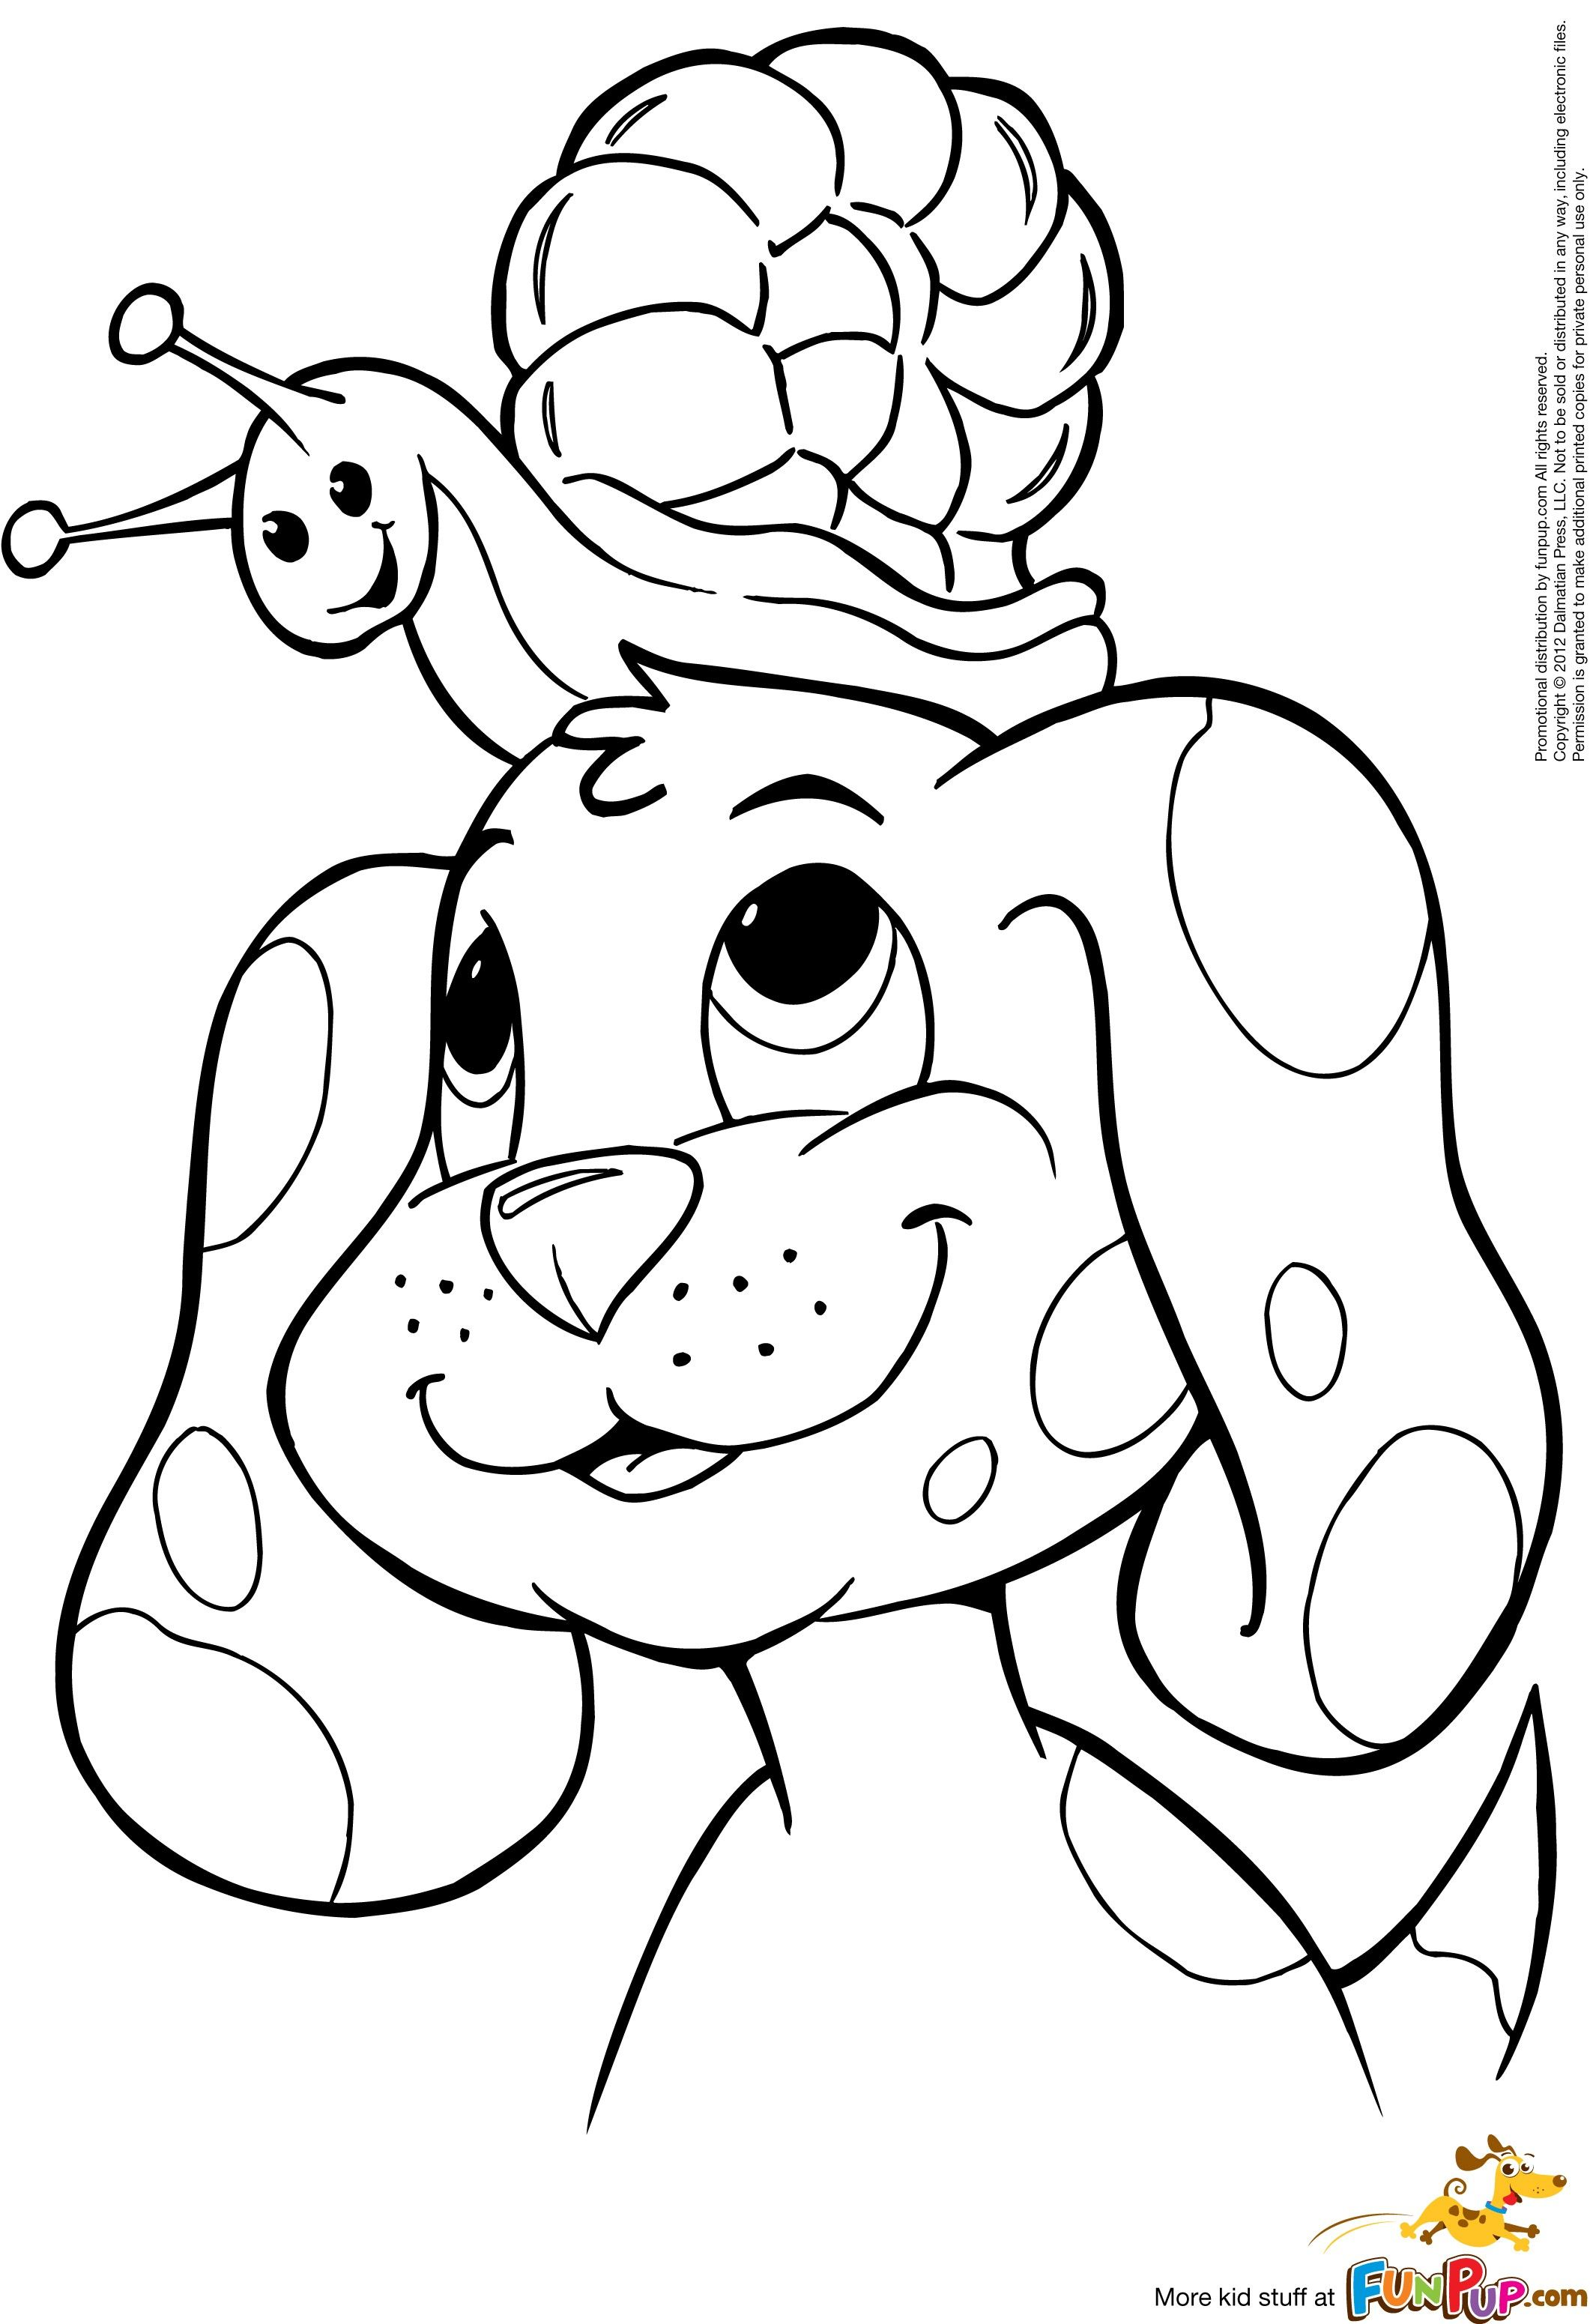 Free printable coloring in pages - Printable Puppy Coloring Pages Animal